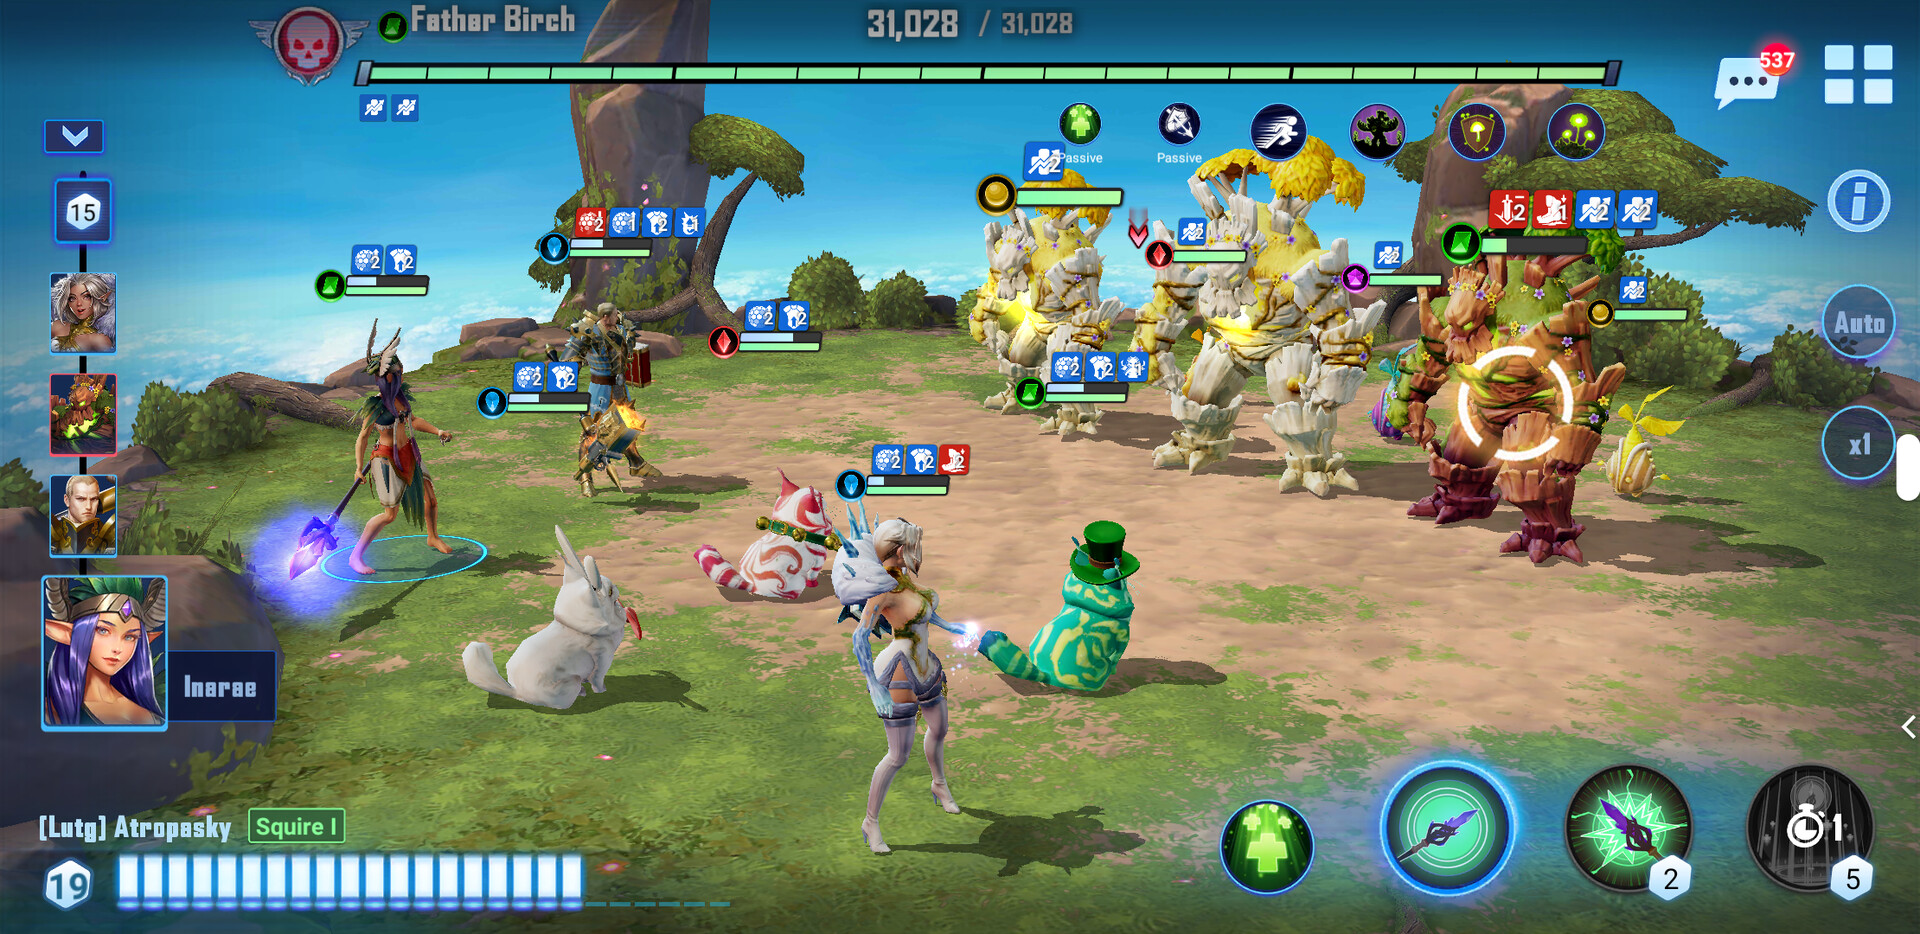 In-game battle scene